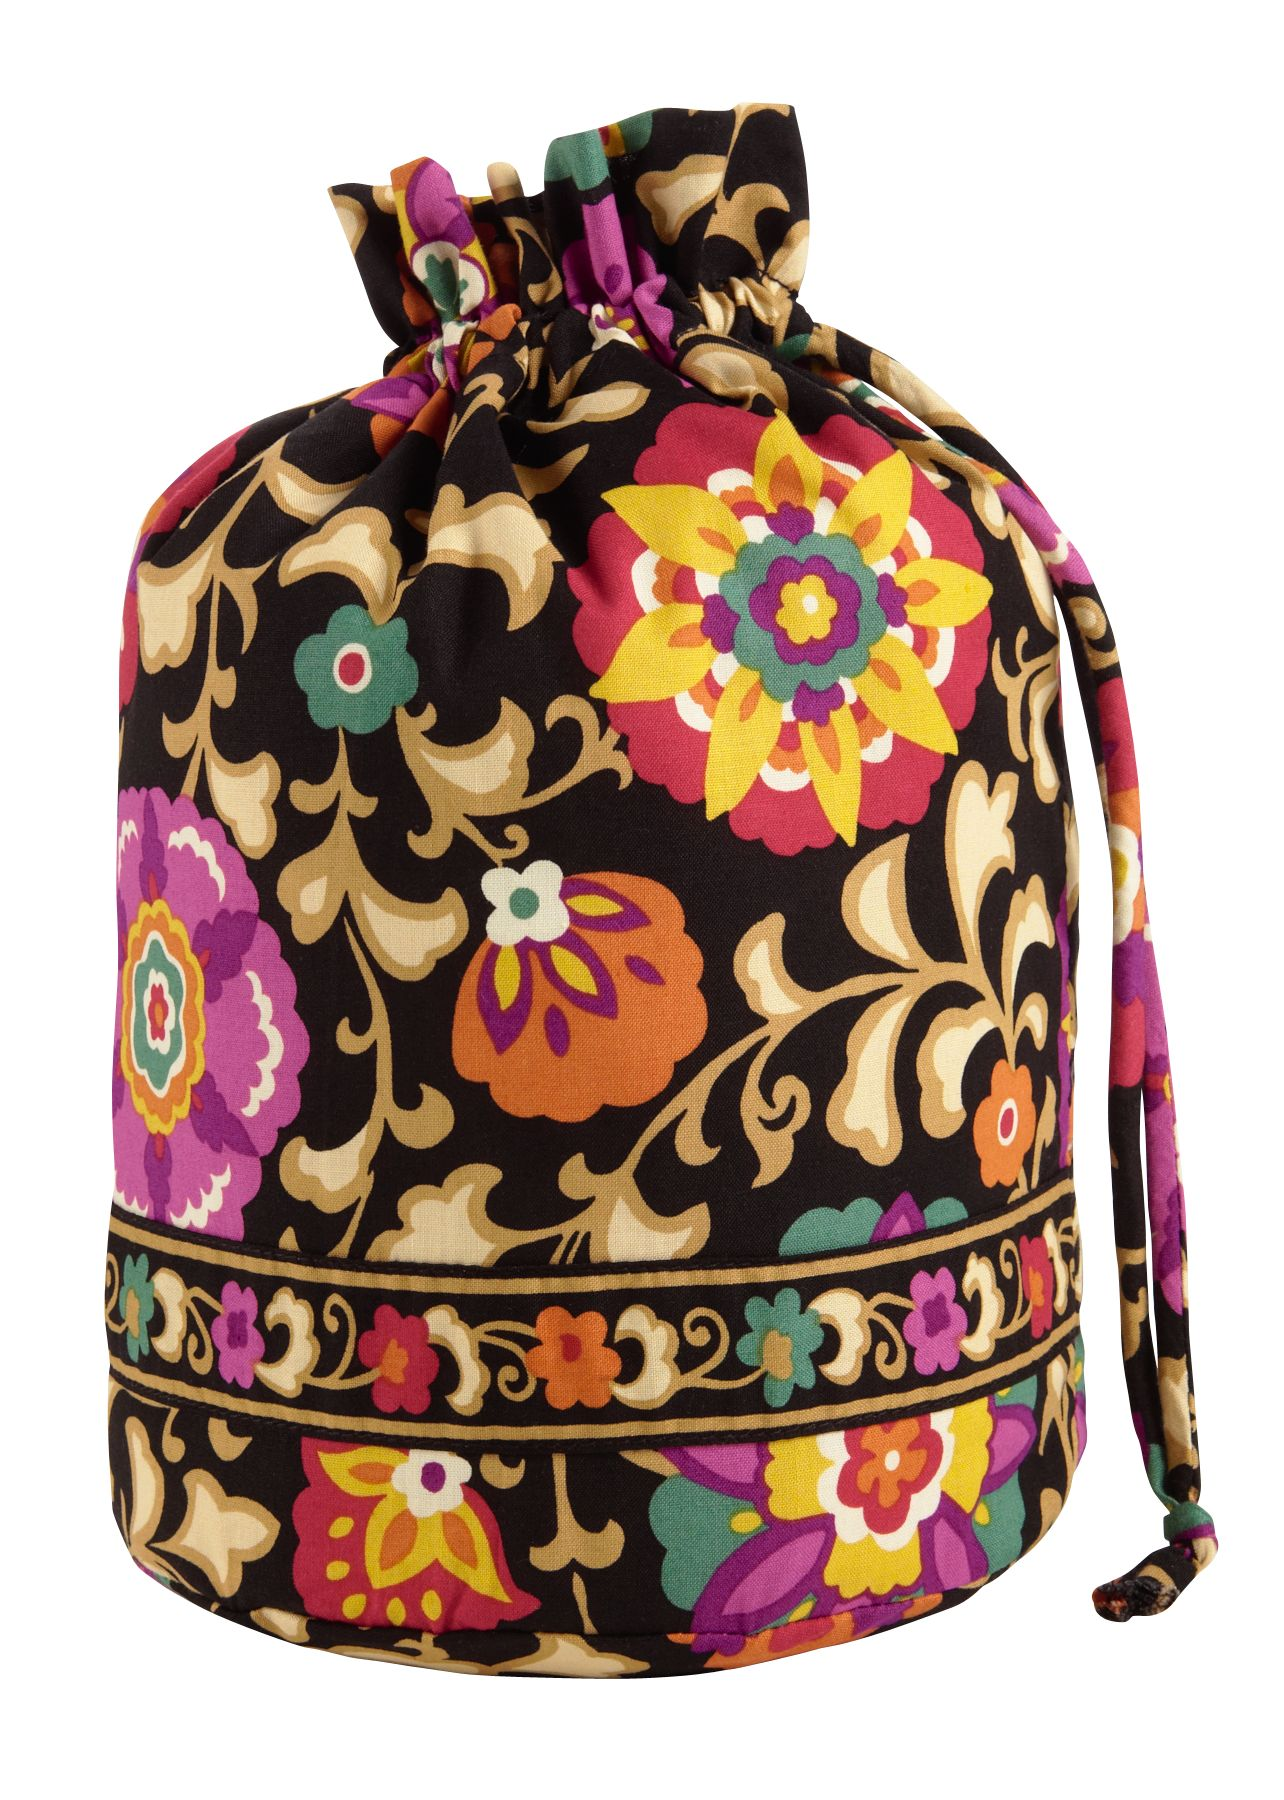 Vera Bradley Ditty Bag in Suzani